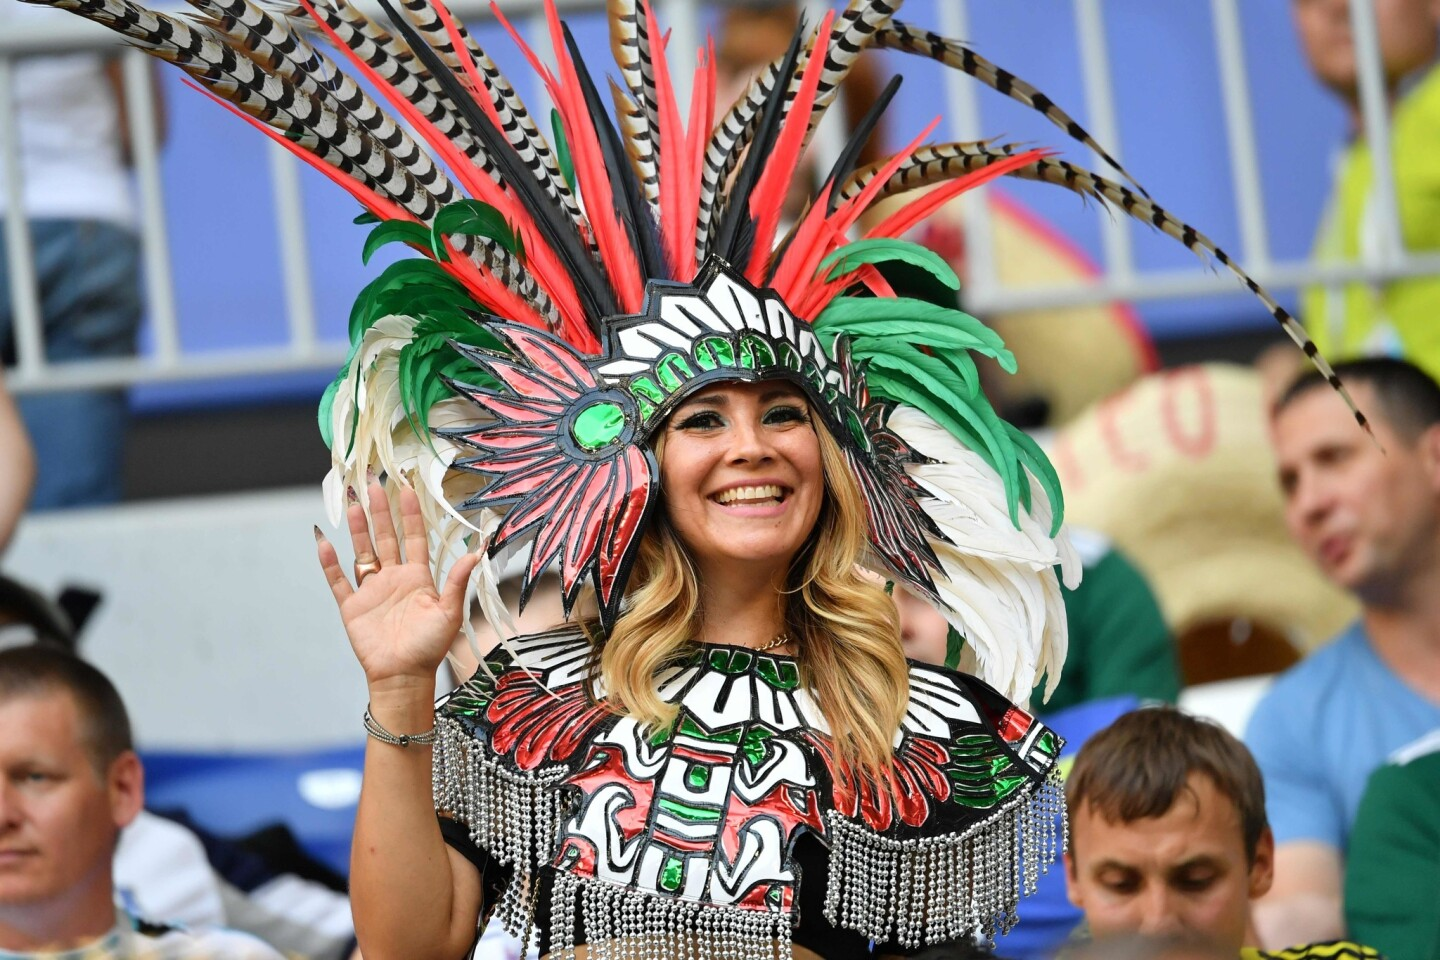 A fan attends the Russia 2018 World Cup round of 16 football match between Brazil and Mexico at the Samara Arena in Samara on July 2, 2018.